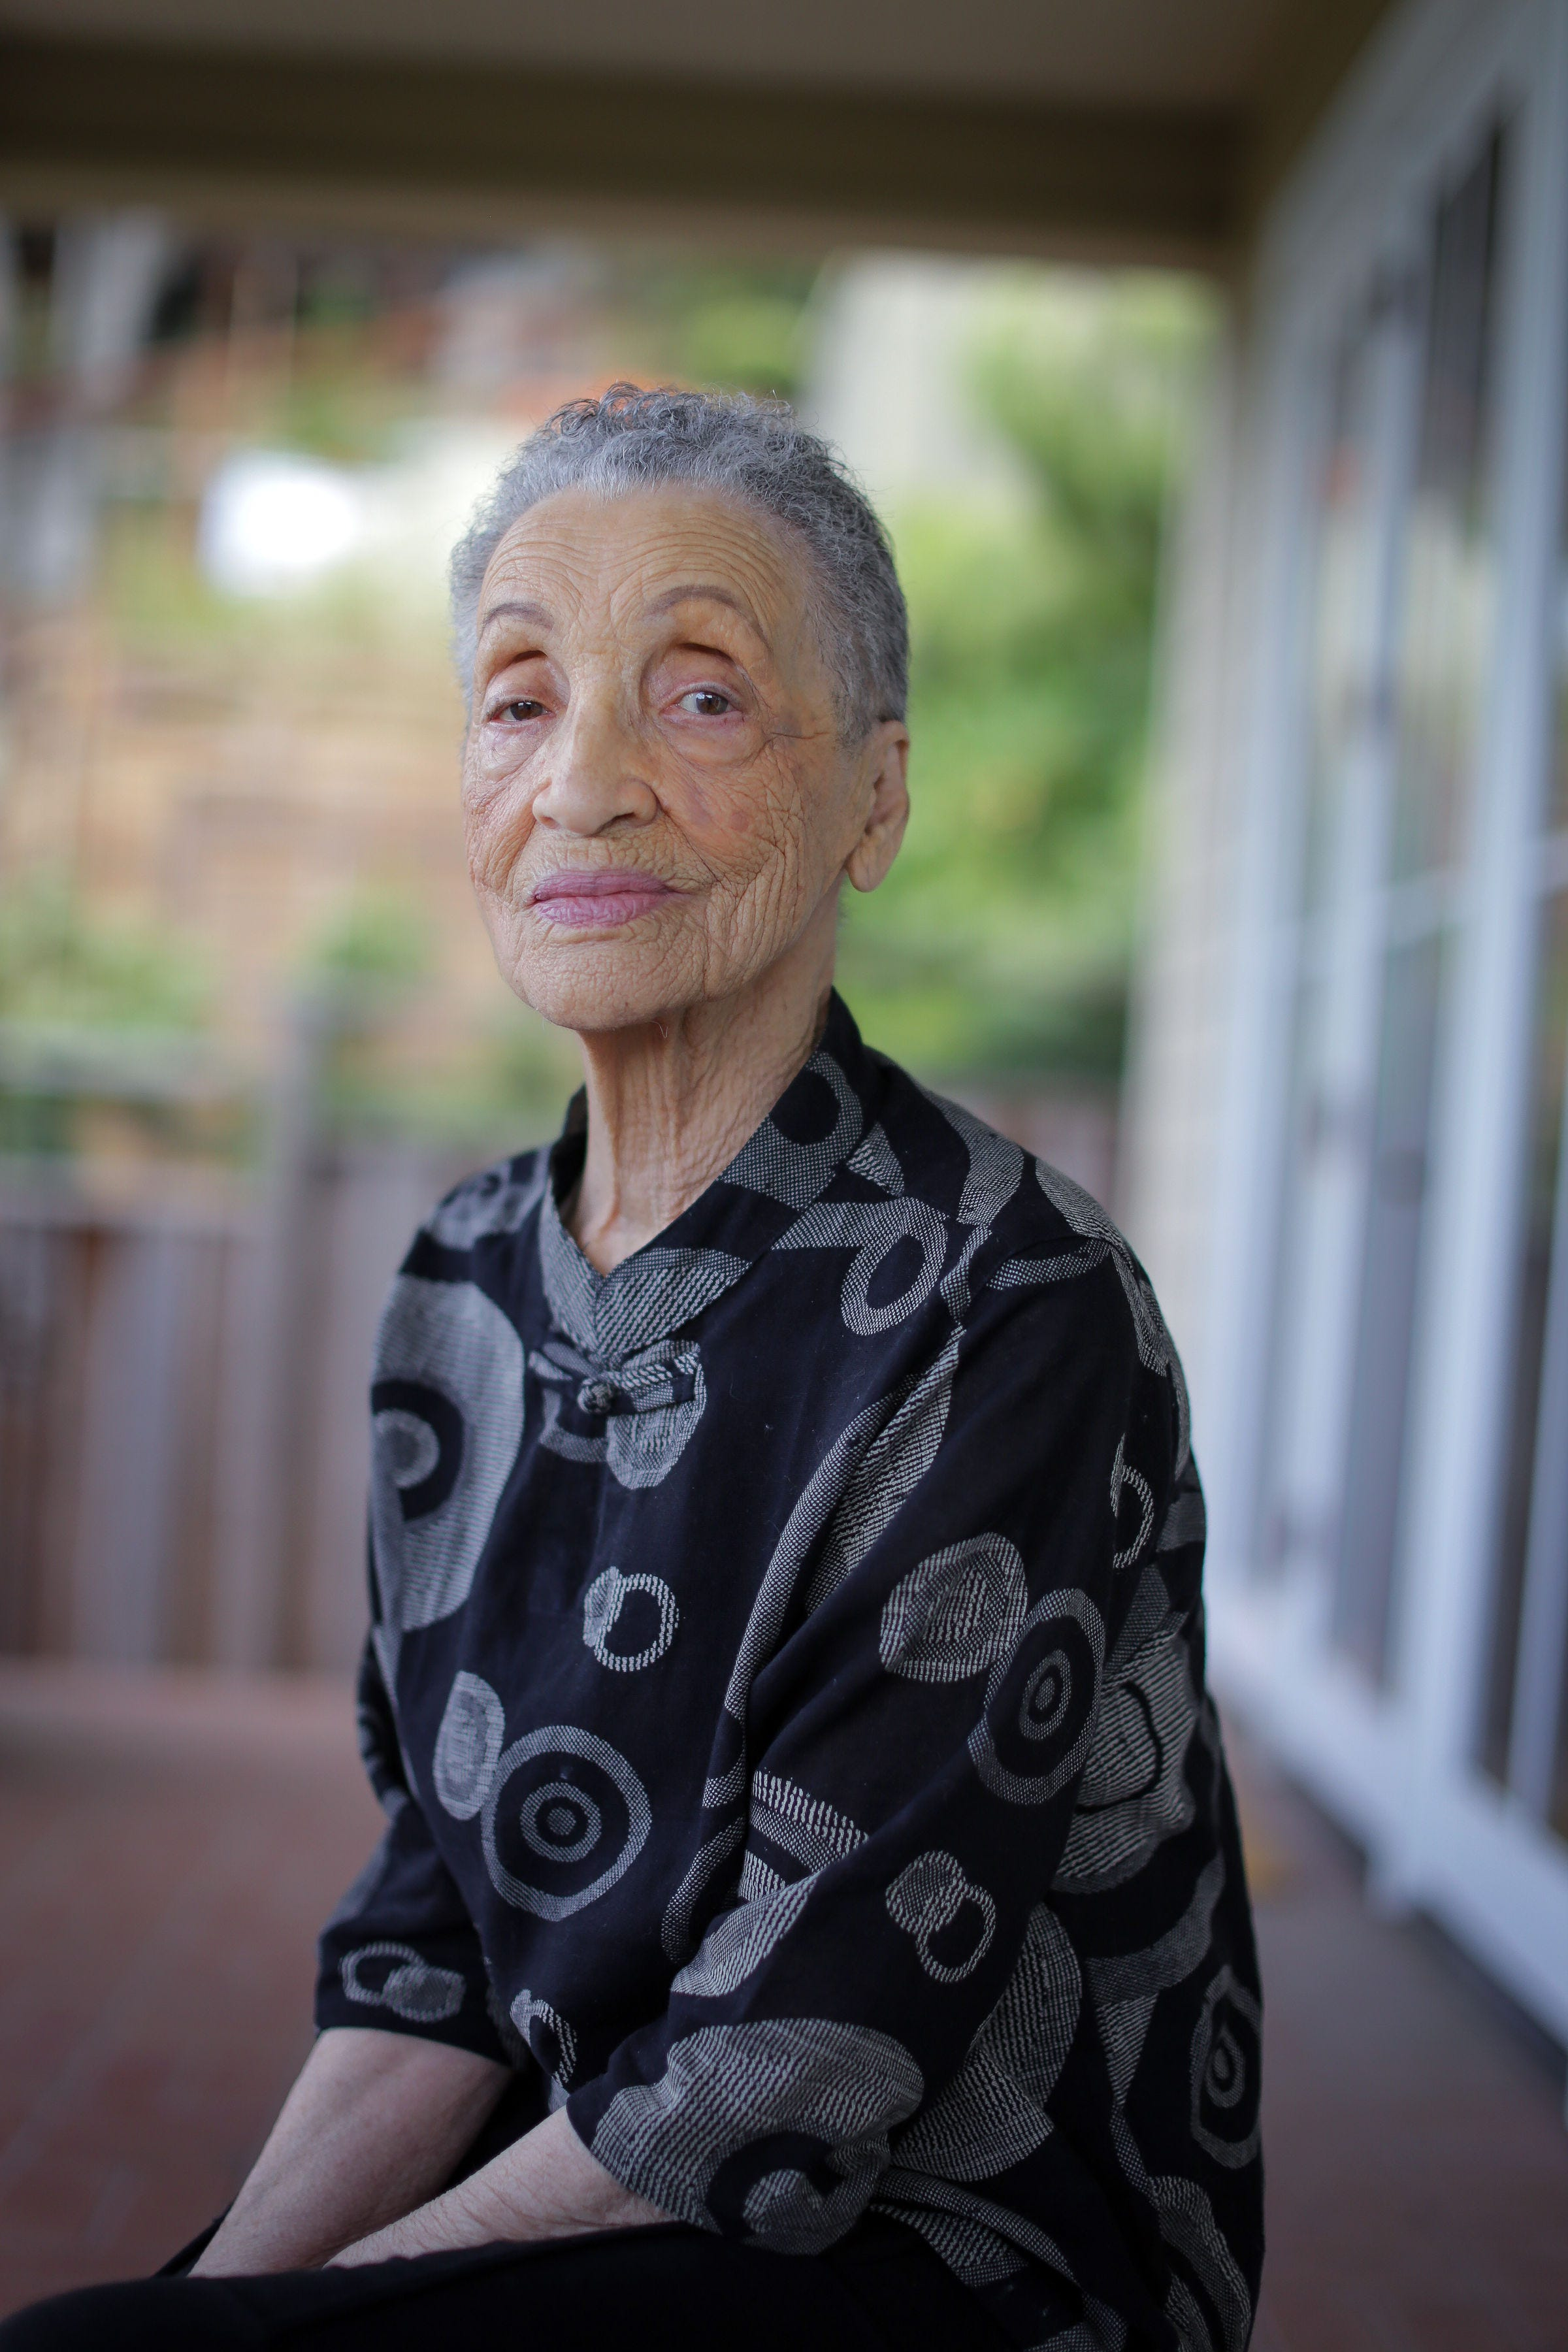 'I have lived my life well': At 100 years old, Betty Reid Soskin is the oldest active ranger in the National Park Service